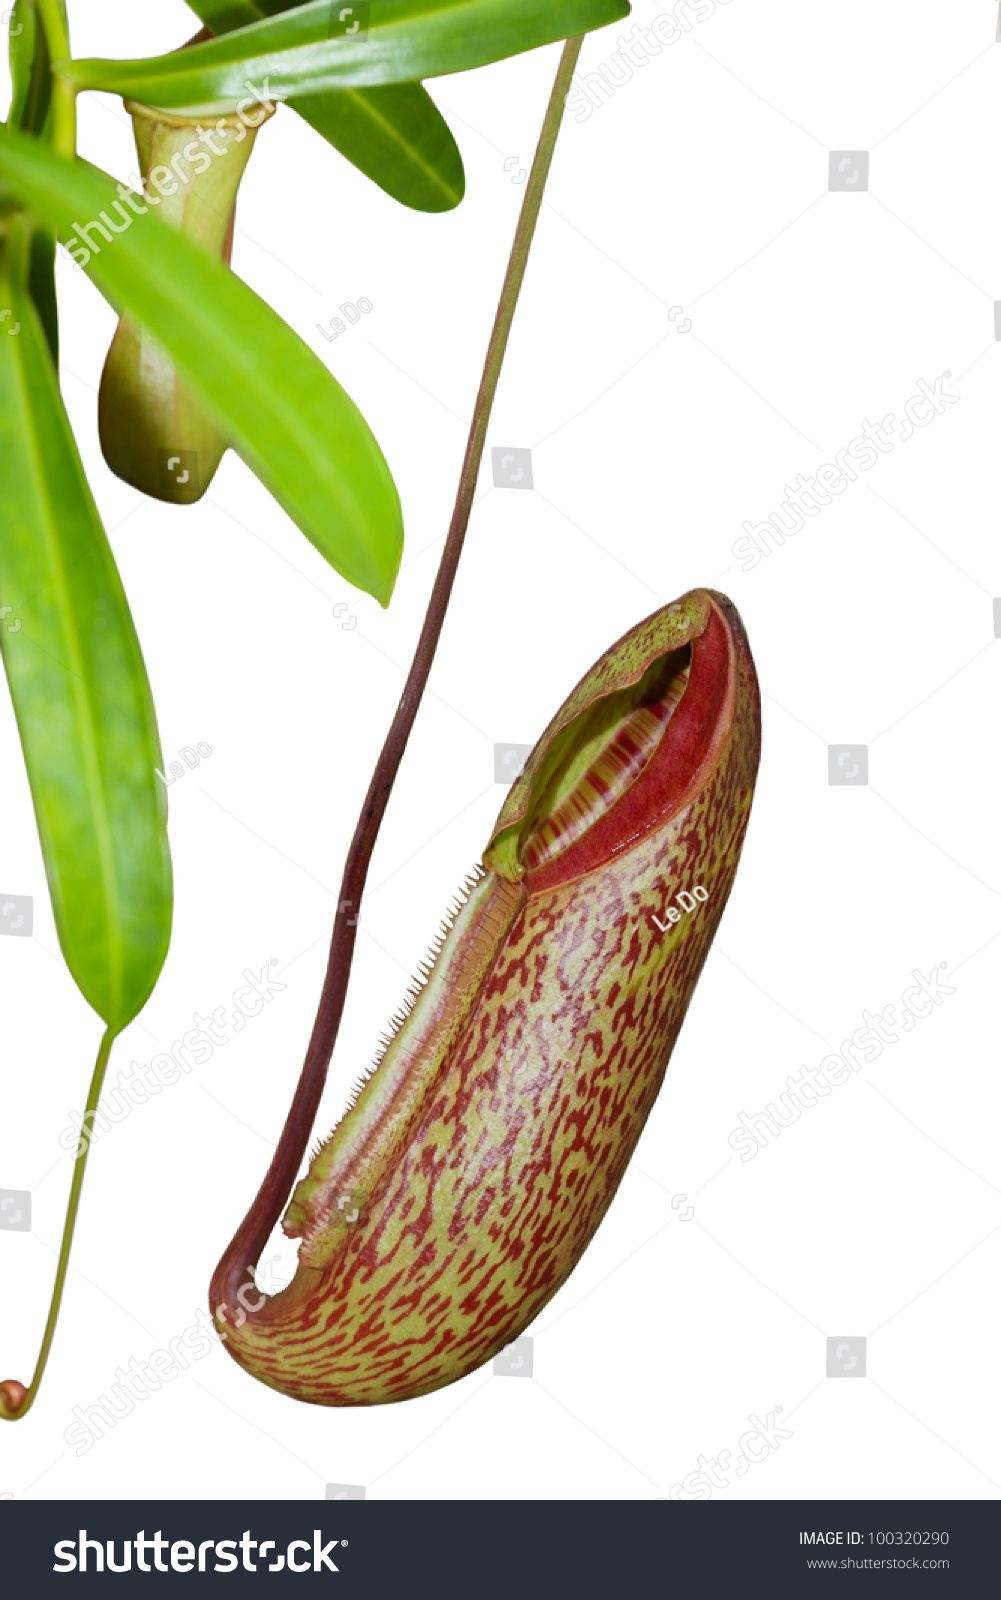 Trap Flower Plant Anatomy Nepenthes Pitfall Stock Photo (Royalty ...